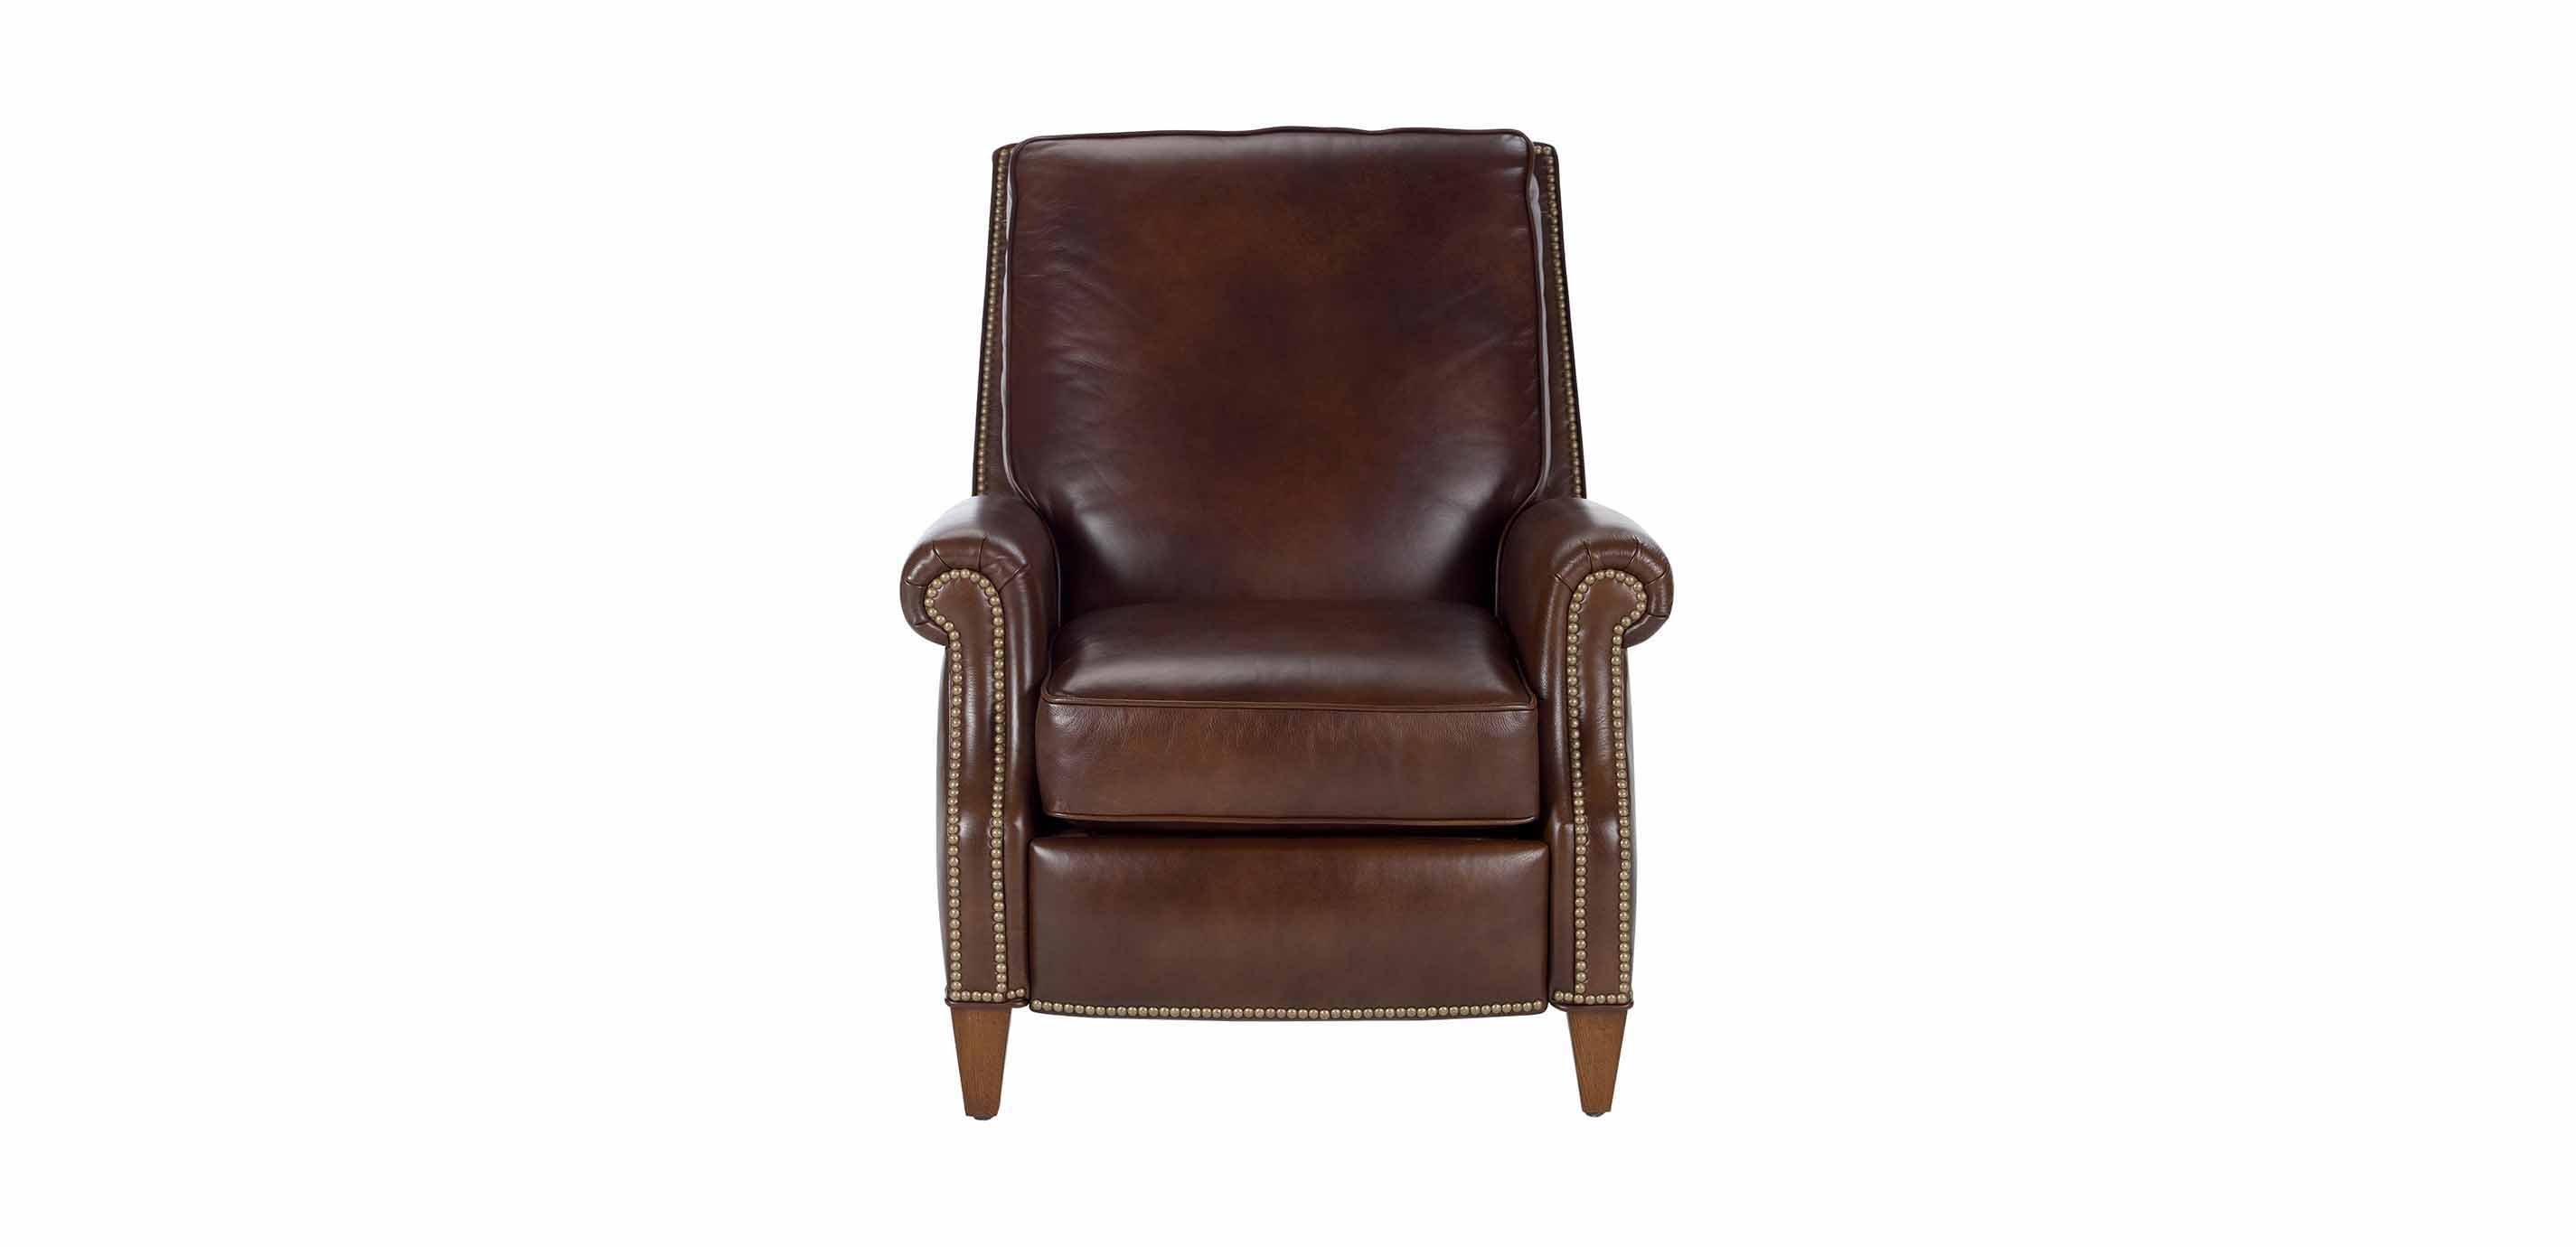 Images Colburn Leather Recliner Omni/Brown   large_gray & Colburn Leather Recliner Omni/Brown | CUSTOM QUICK SHIP UPHOLSTERY islam-shia.org